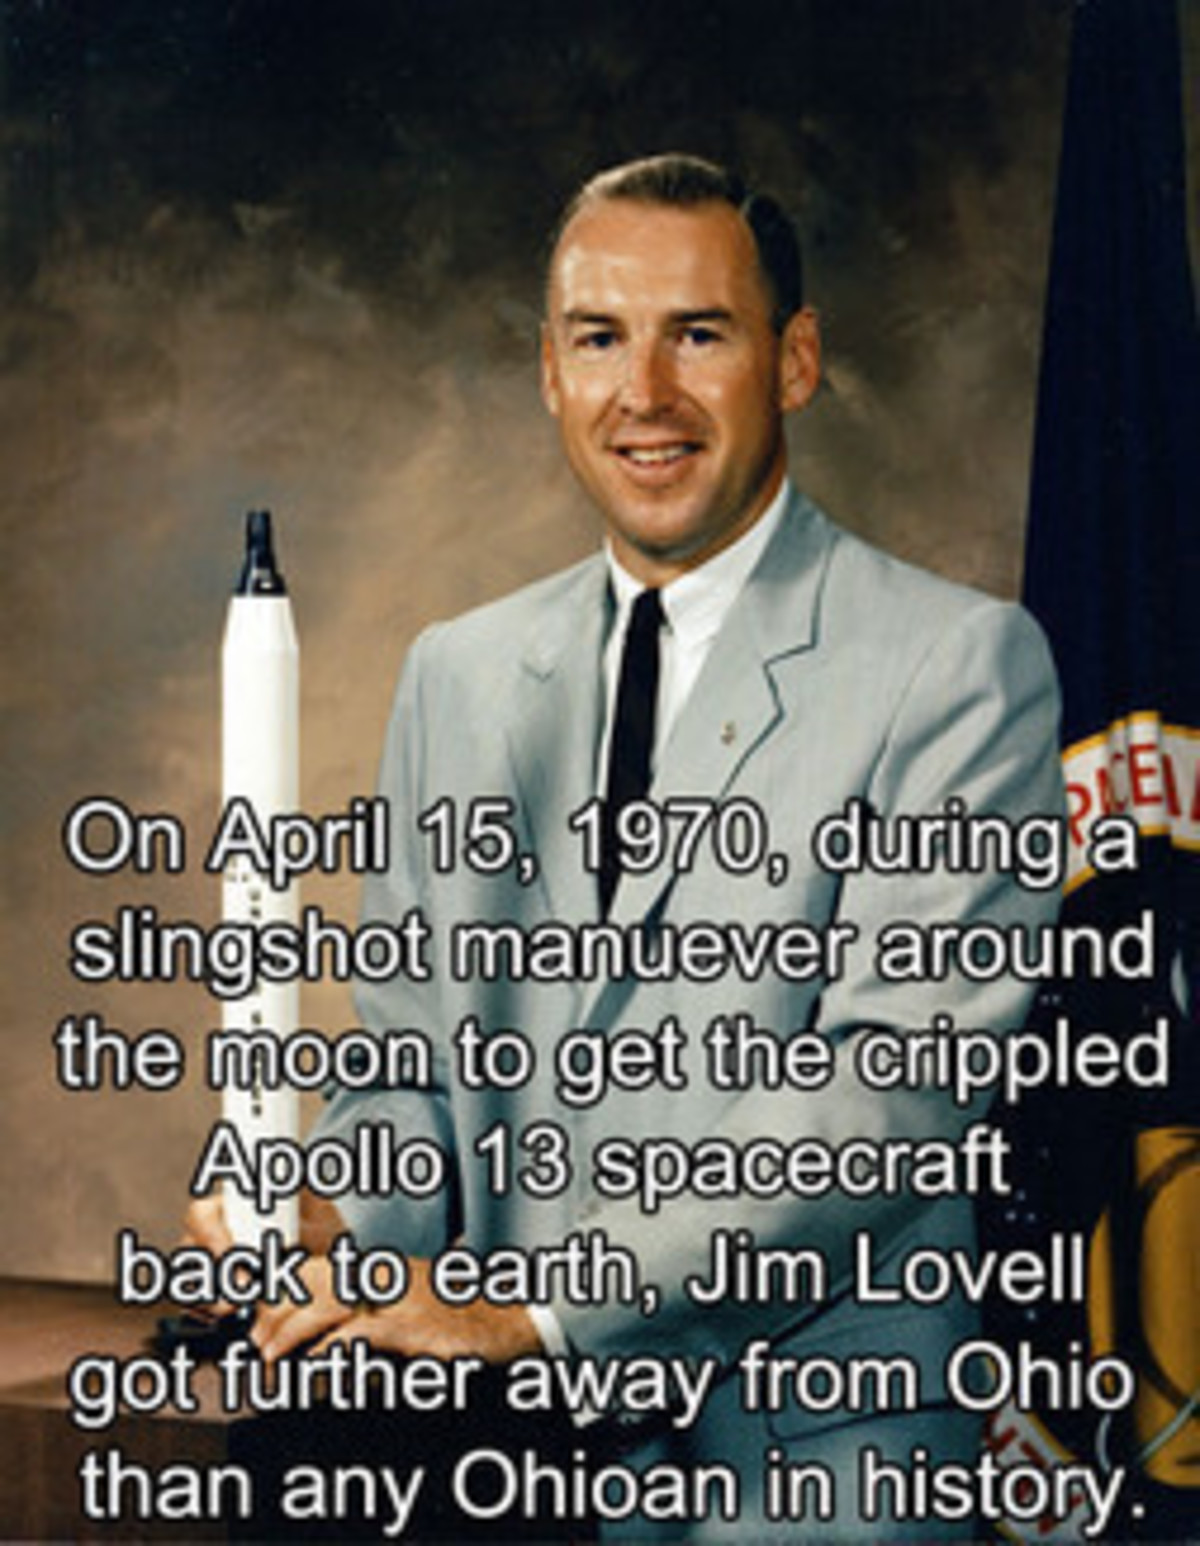 A true legend. .. Toshiro He's the chosen one, the one the managed to escape. God Bless Jim Lovell.